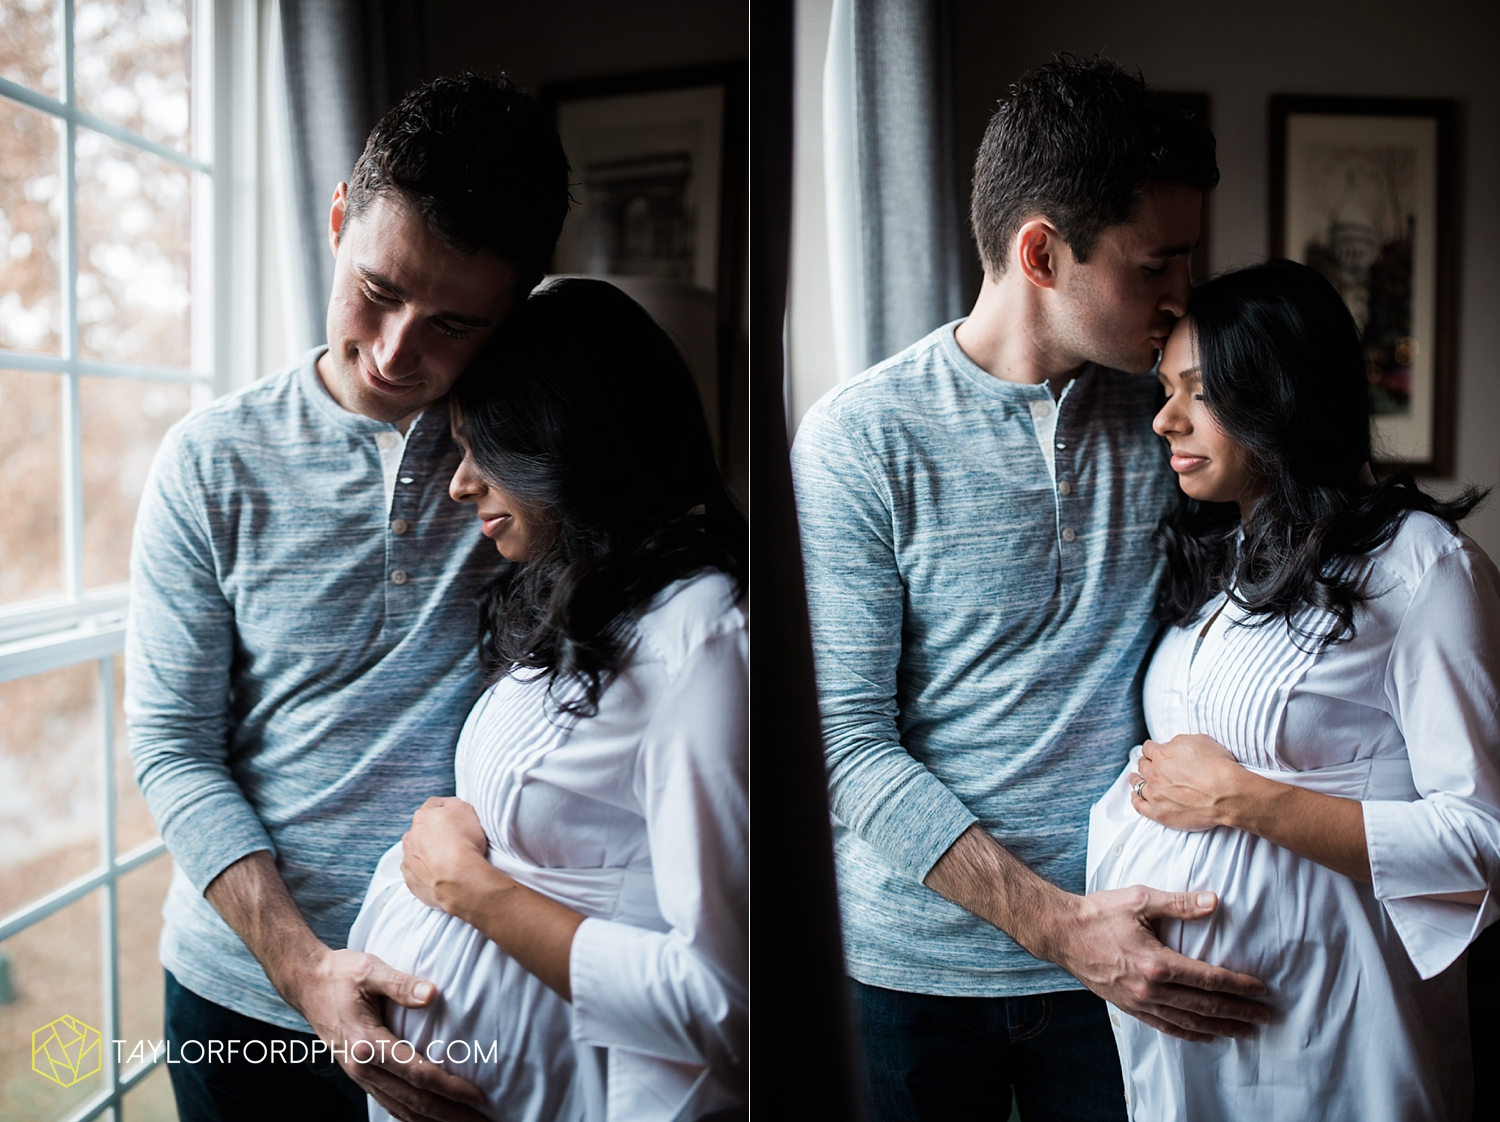 nashville_tennessee_maternity_lifestyle_photographer_taylor_ford_4215.jpg